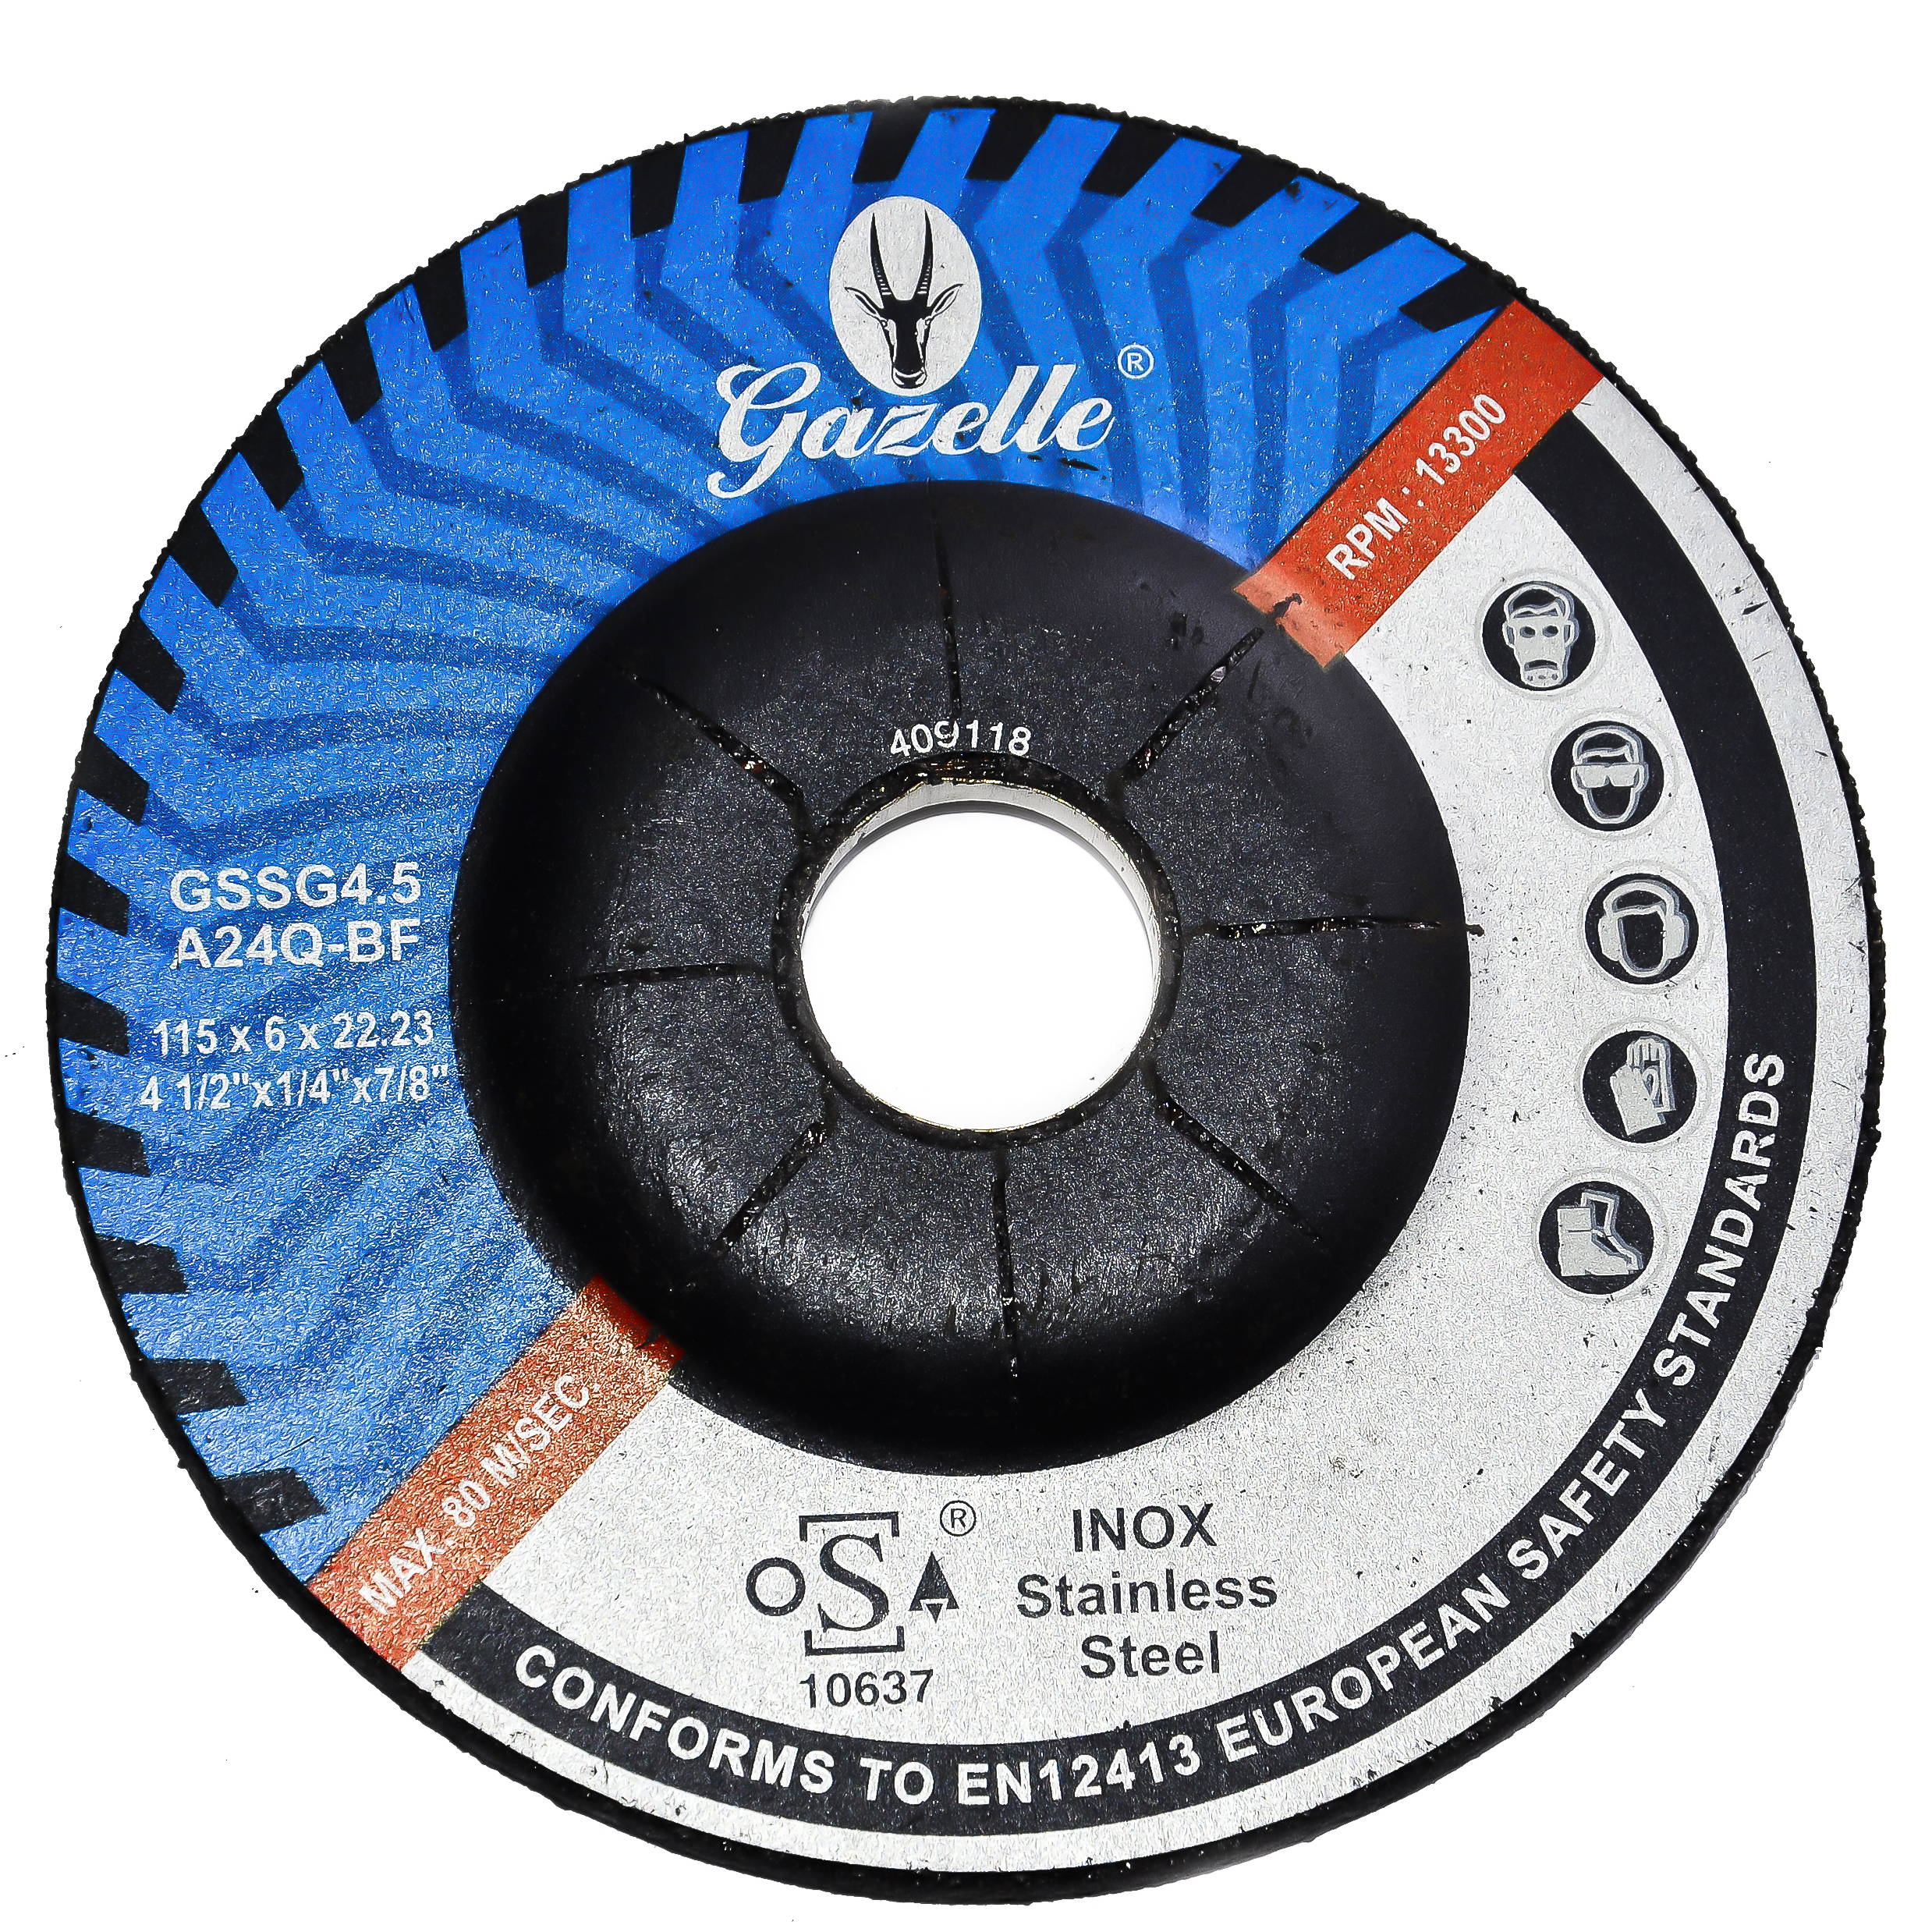 GAZELLE GSSG4 - Stainless Steel Grinding Disc 4in – 100 x 6 x 16mm